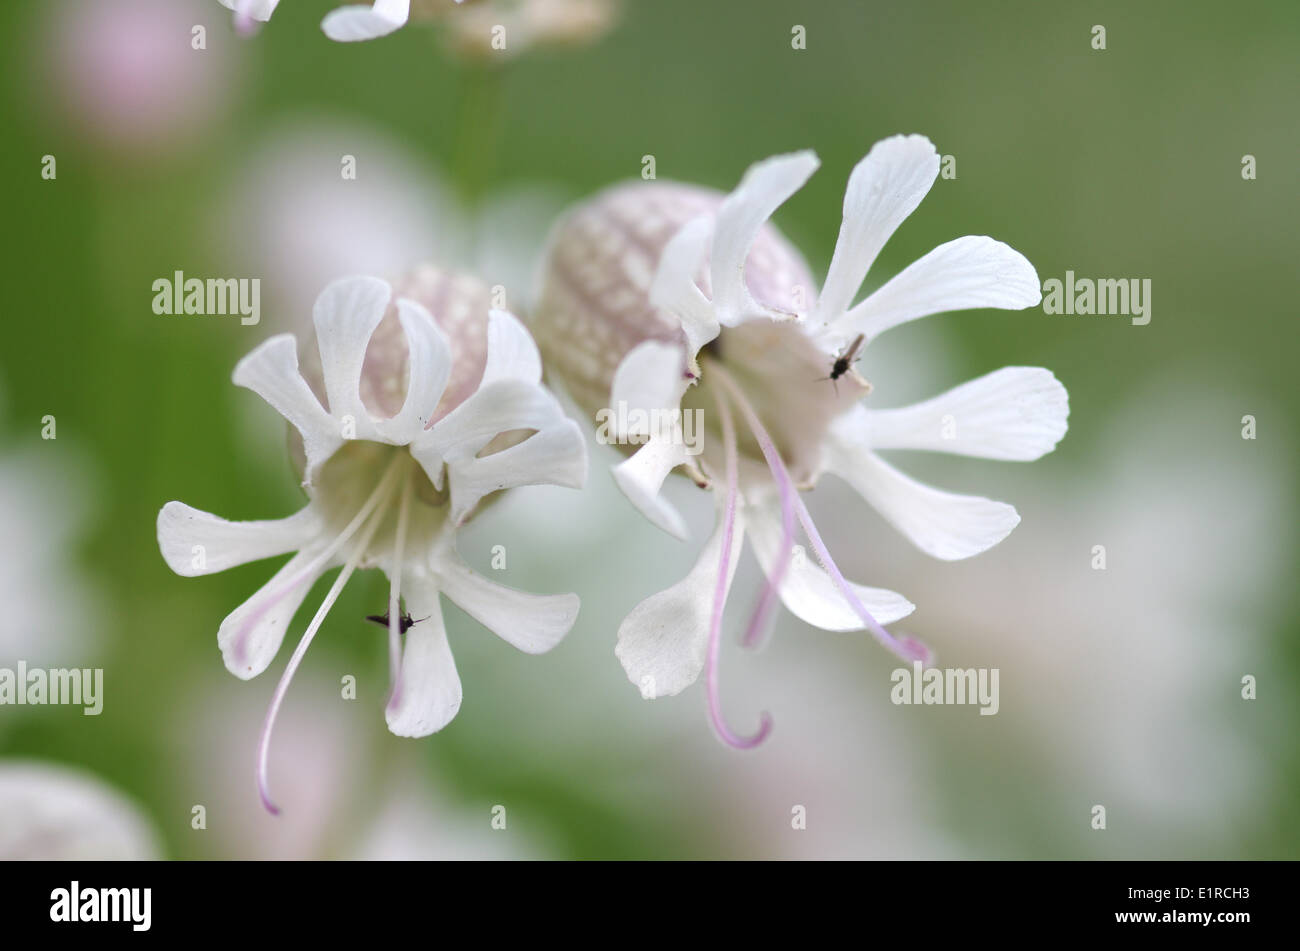 Close Up Of The Flowers Of The Bladder Campion Stock Photo 69970911